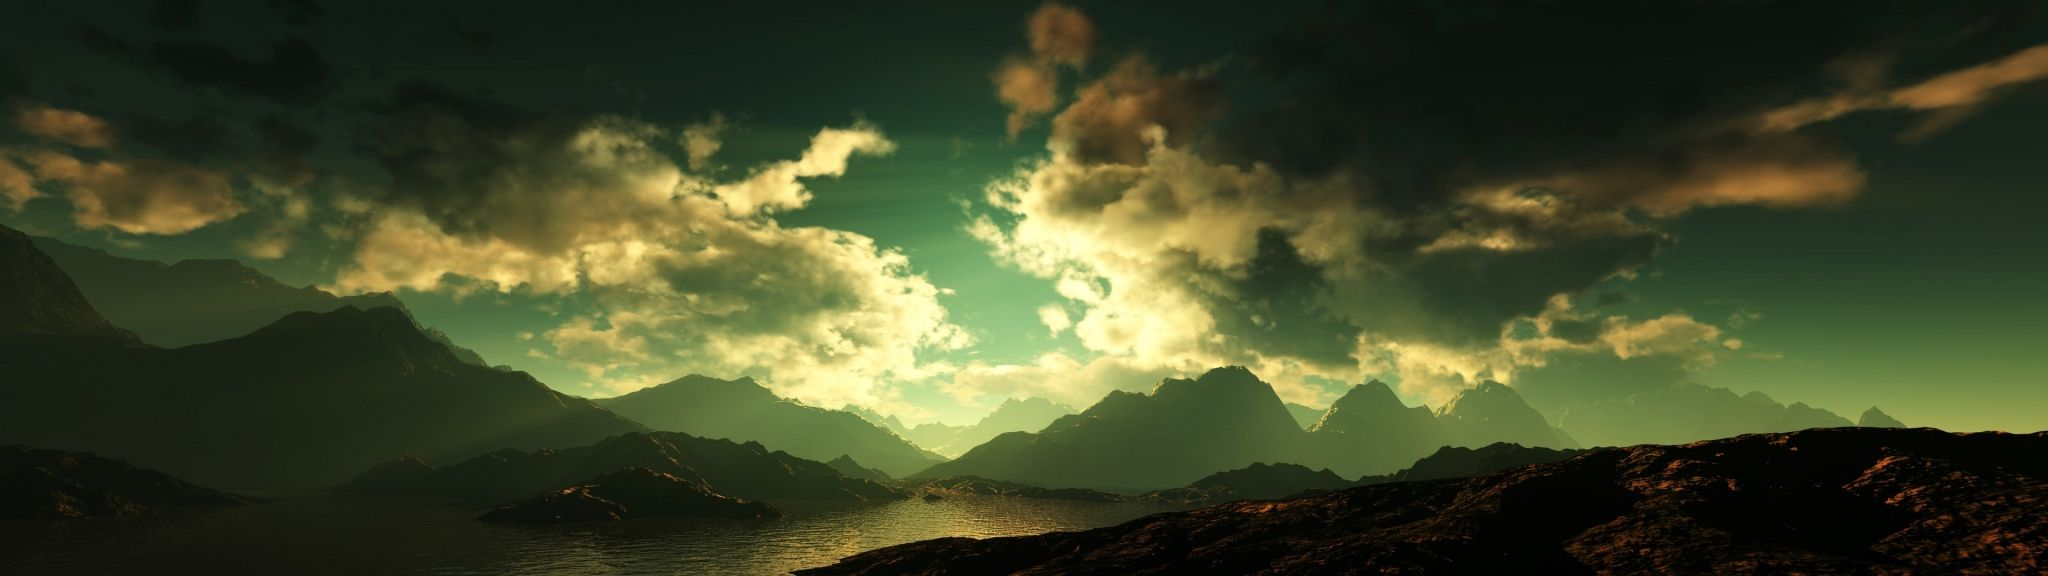 Dual Screen Screensavers And Backgrounds Free Backgrounds Free Screen Savers Background